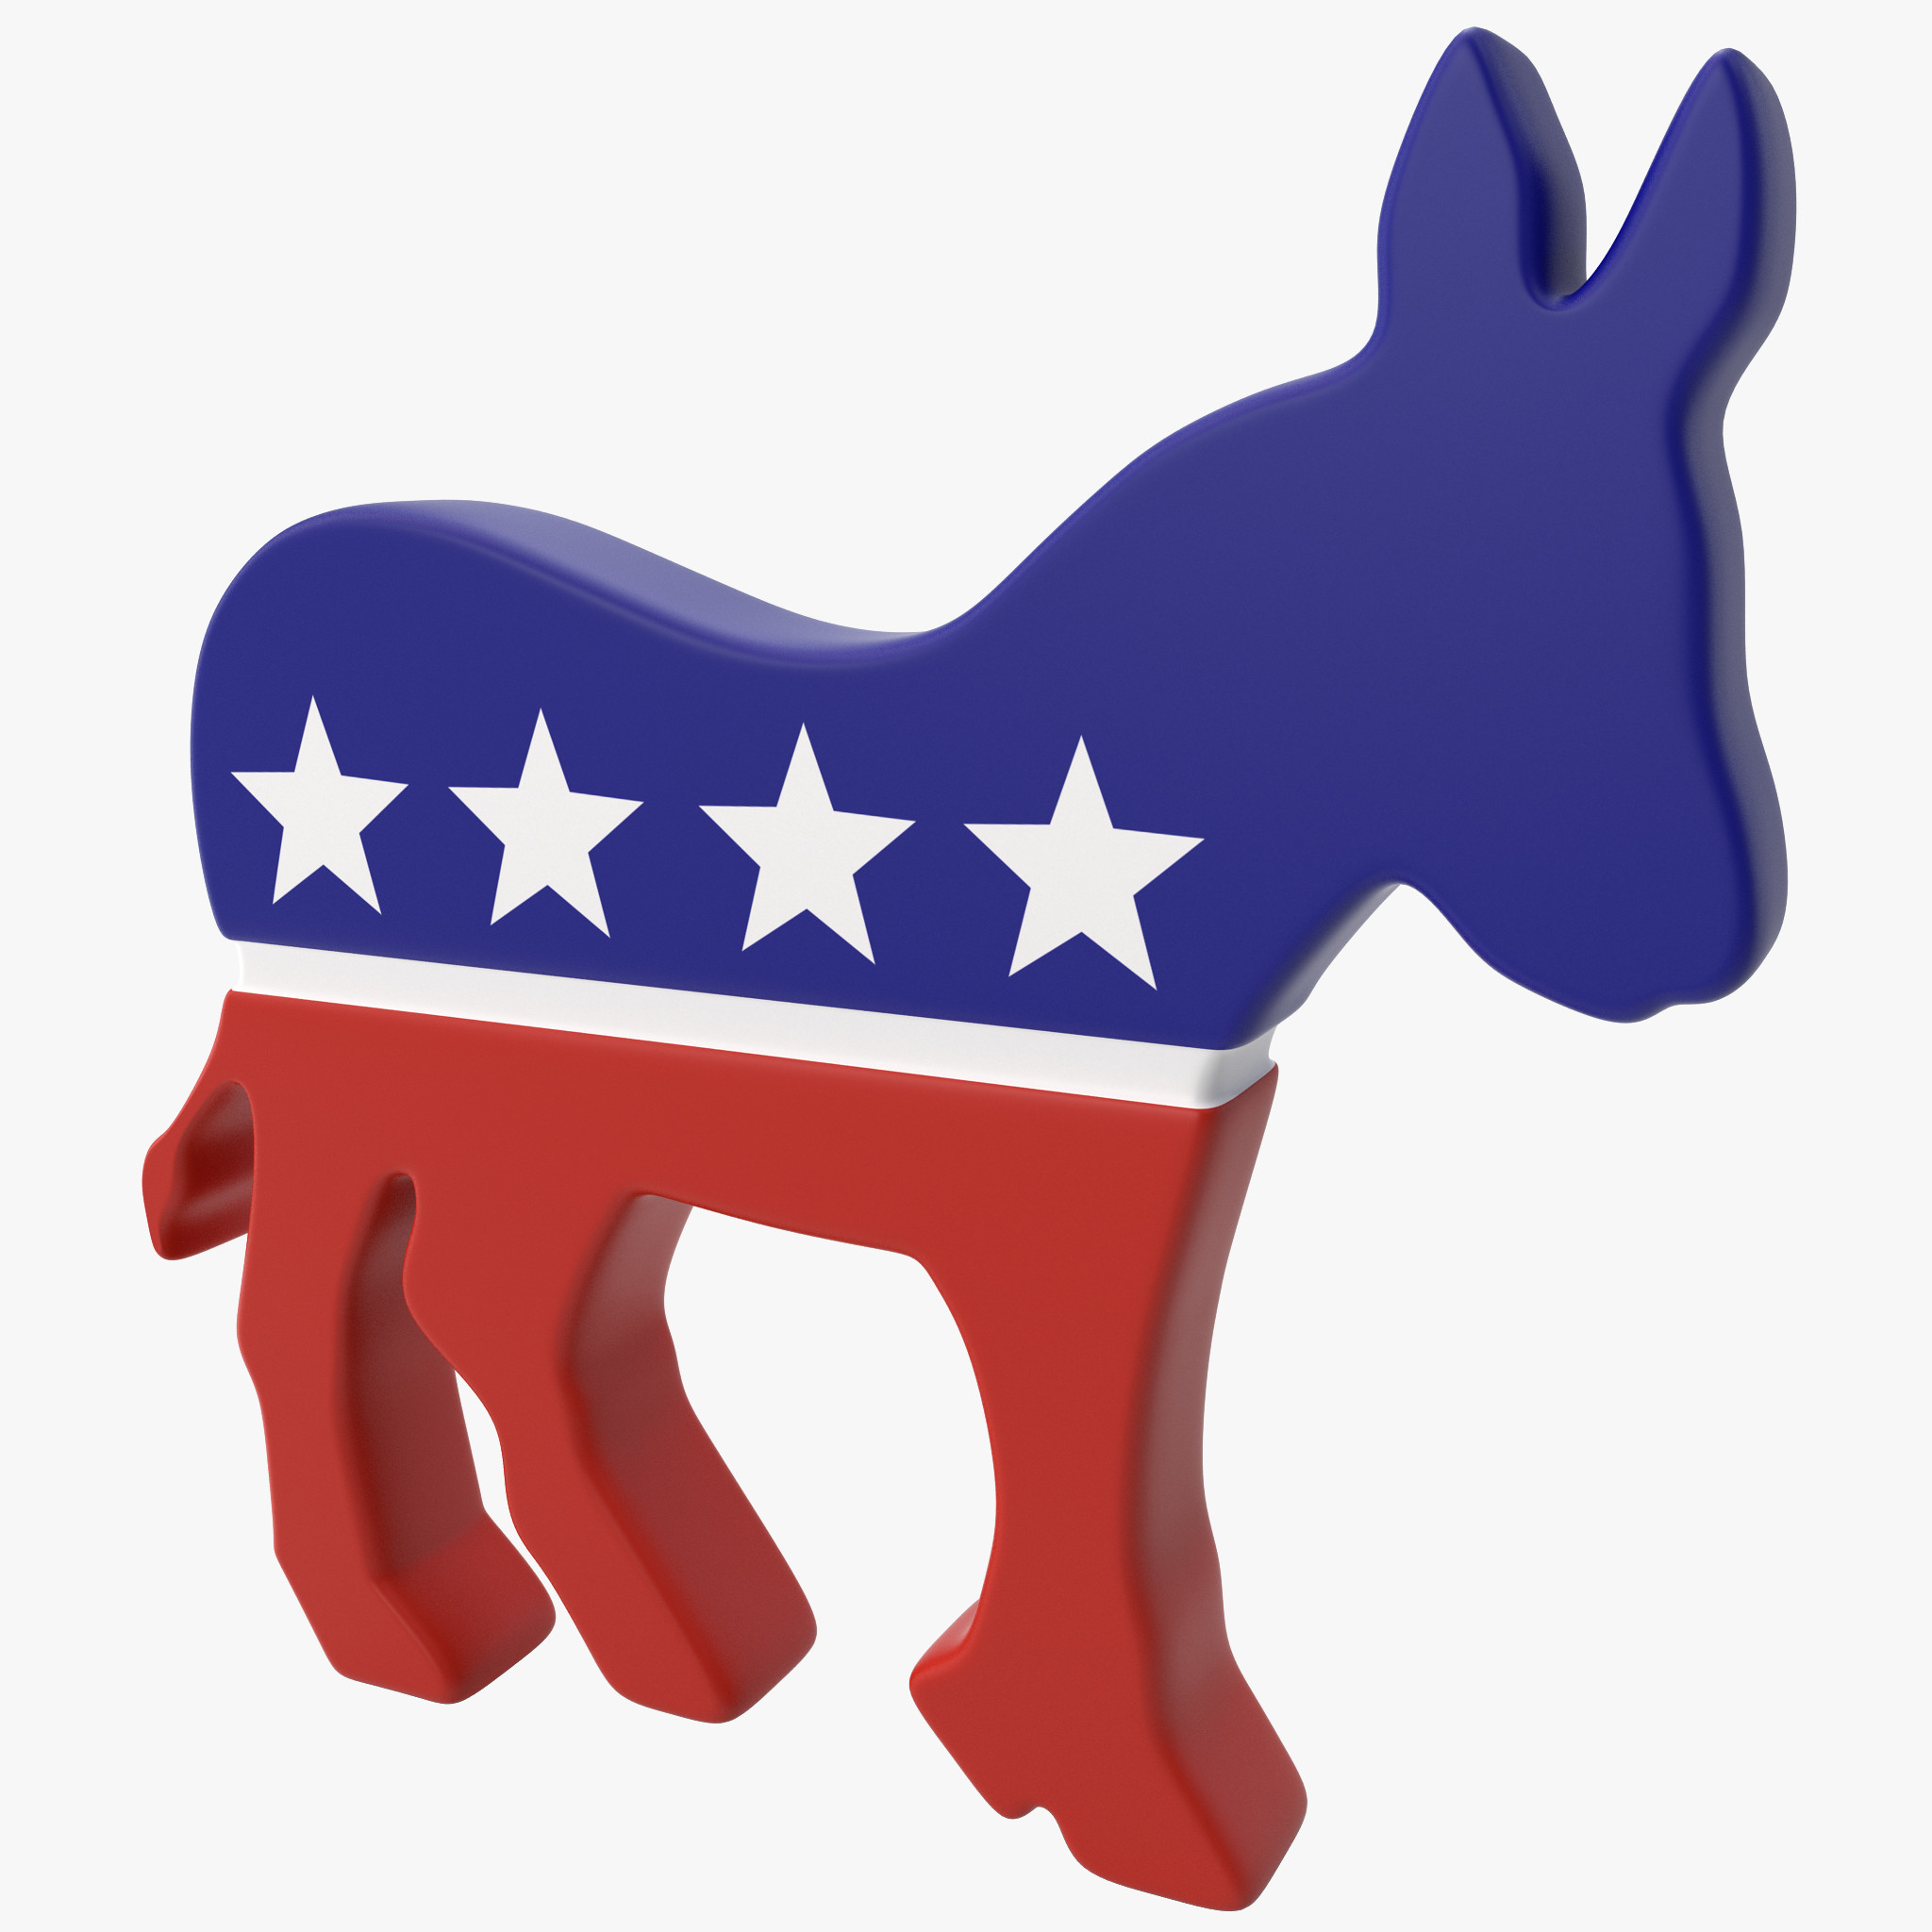 Democrat And Republican Symbol Democrat Symbol